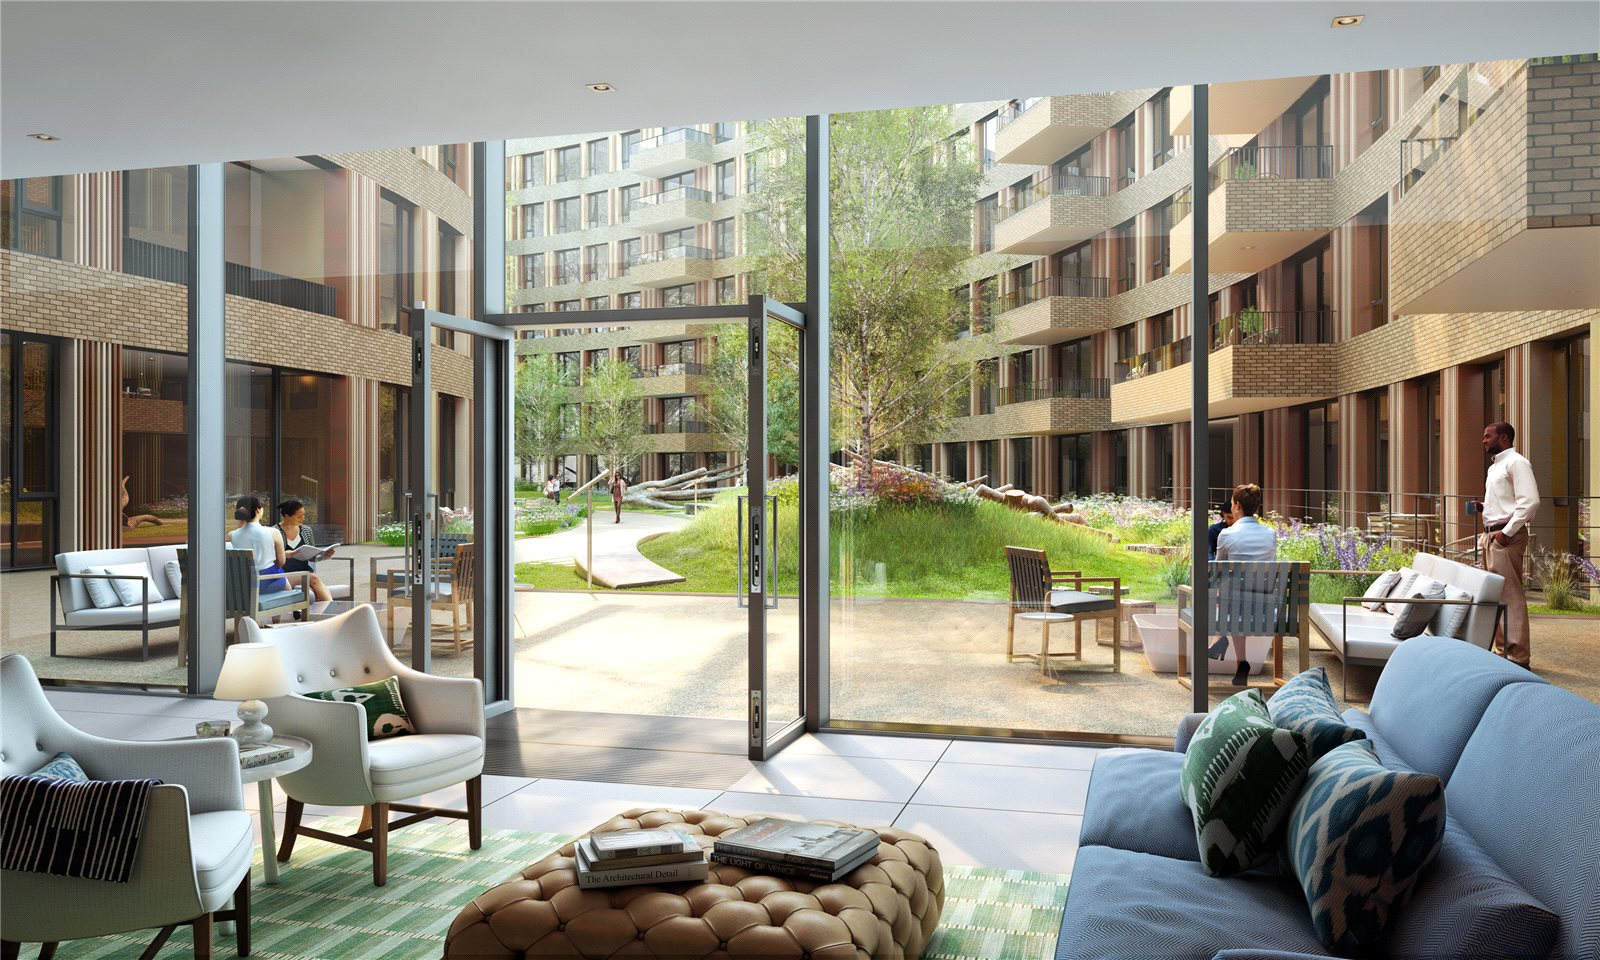 Appartements / Flats pour l Vente à Television Centre, 101 Wood Lane, London, W12 London, Angleterre